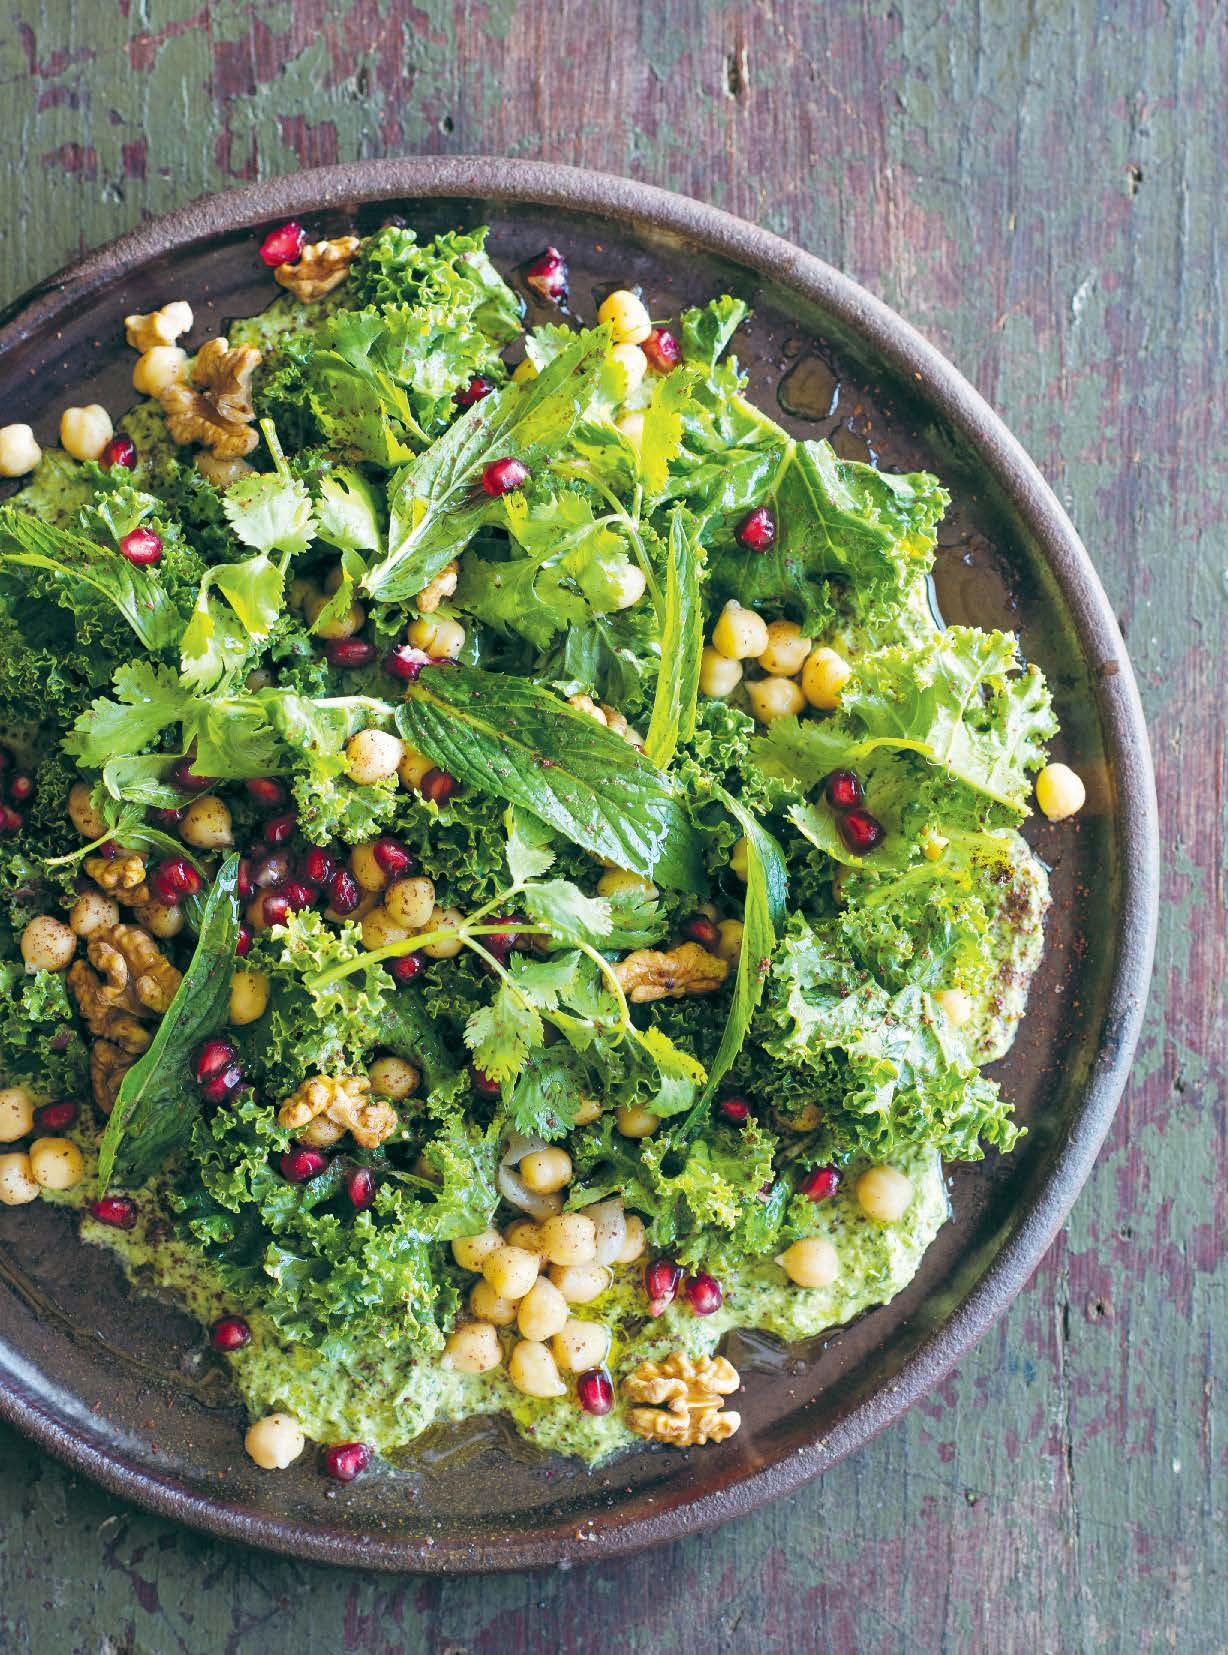 Salted kale with chickpeas and green tahini